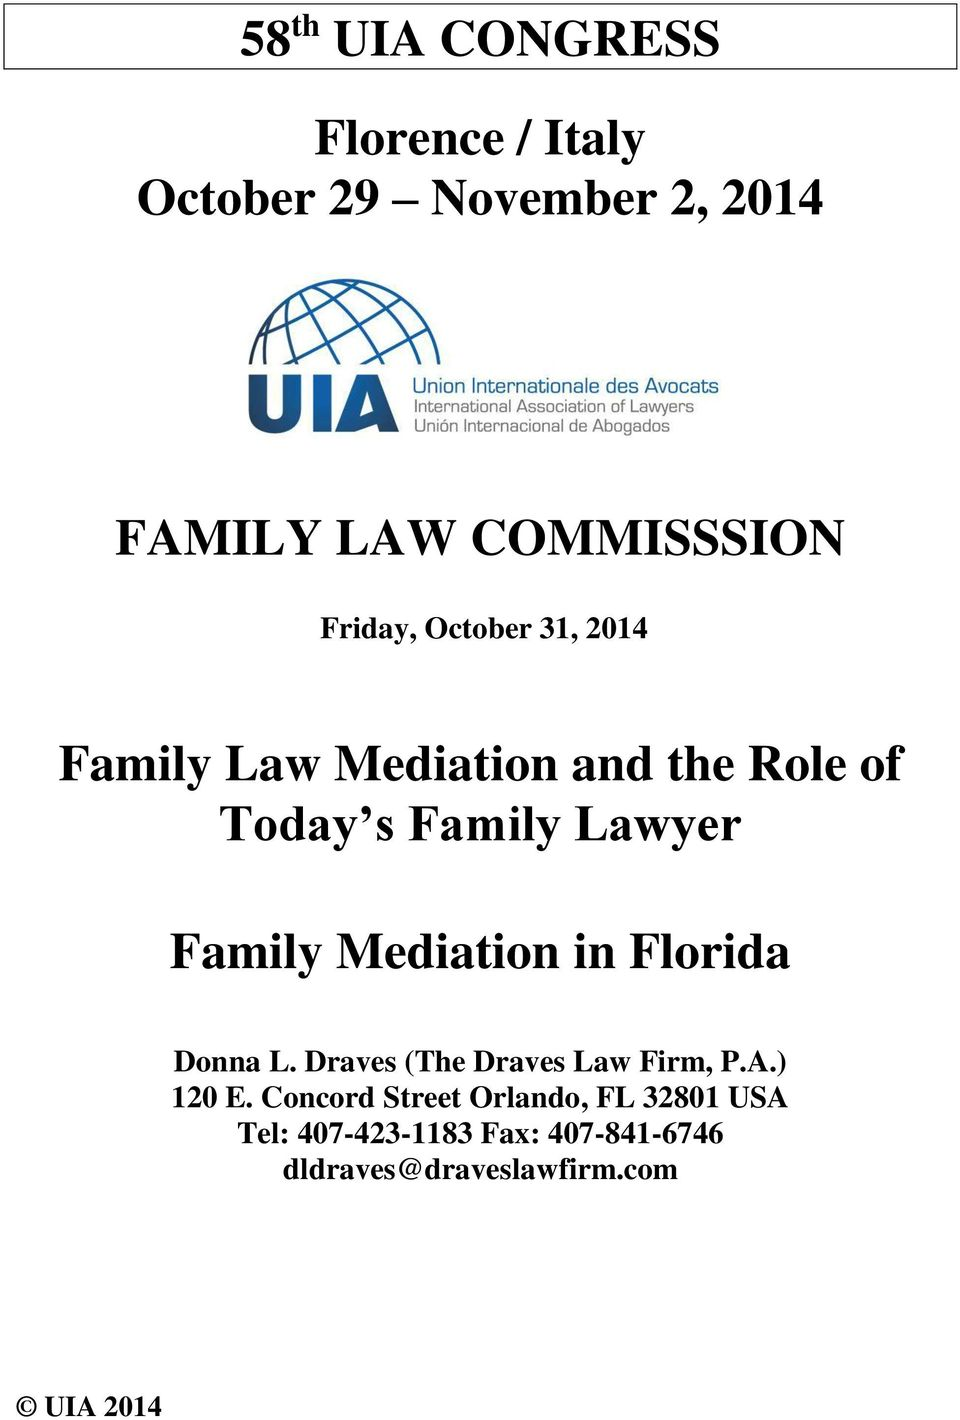 Family Mediation in Florida Donna L. Draves (The Draves Law Firm, P.A.) 120 E.